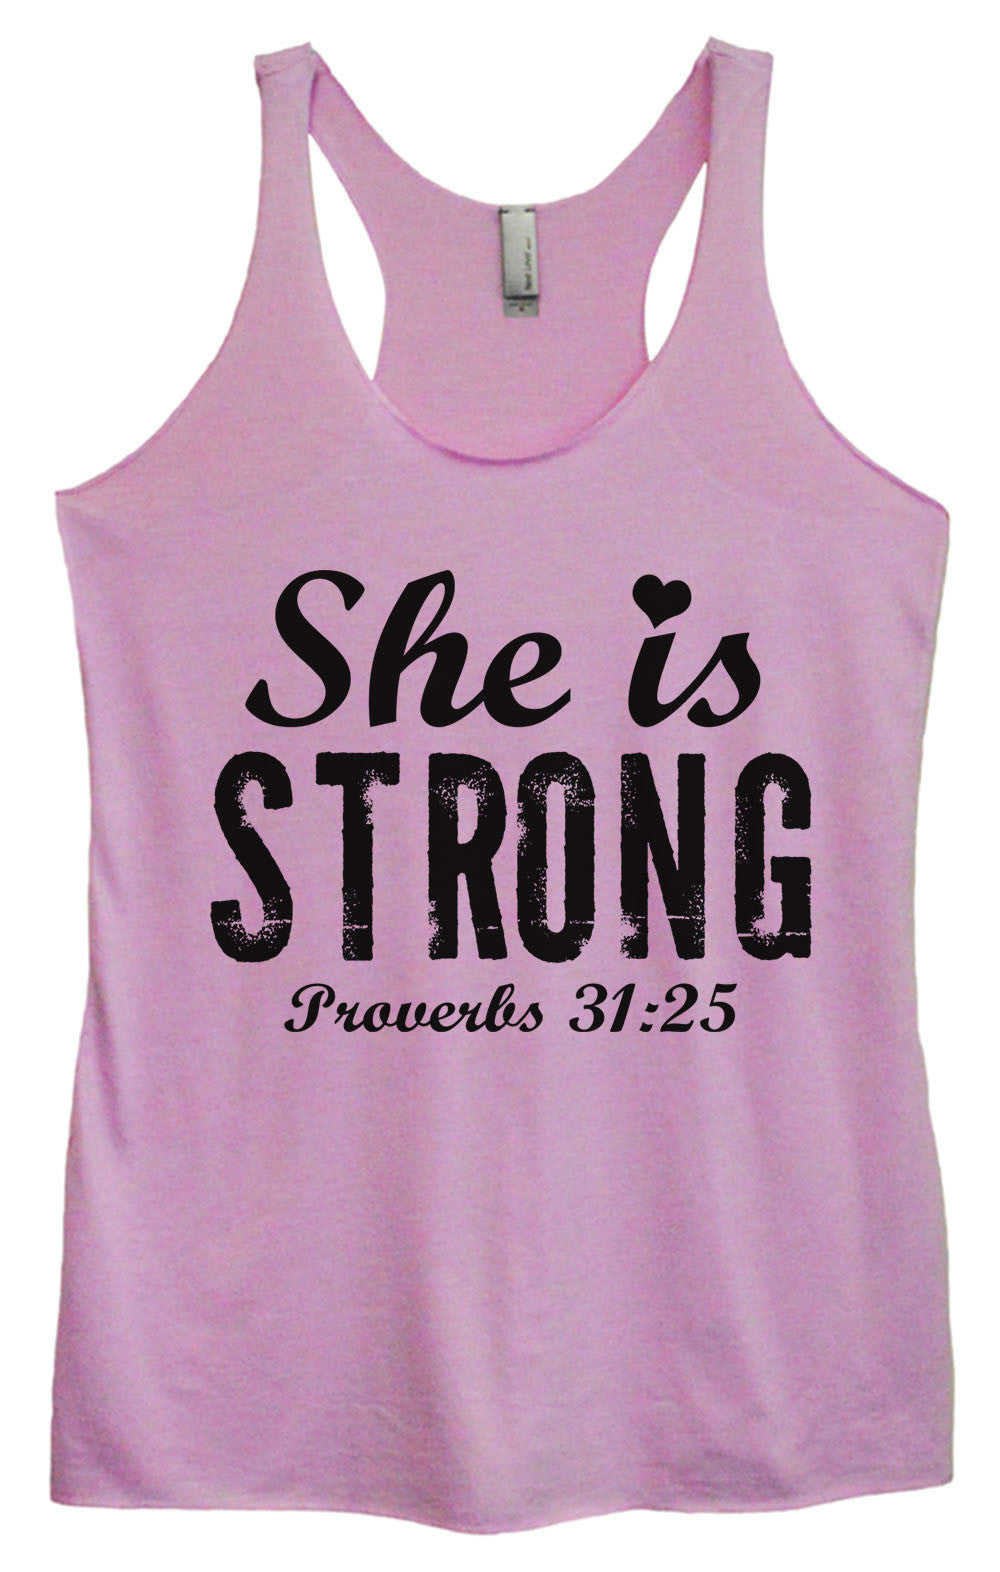 Womens Fashion Triblend Tank Top - She Is Strong Proverbs 31:25 - Tri-939 - Funny Shirts Tank Tops Burnouts and Triblends  - 3